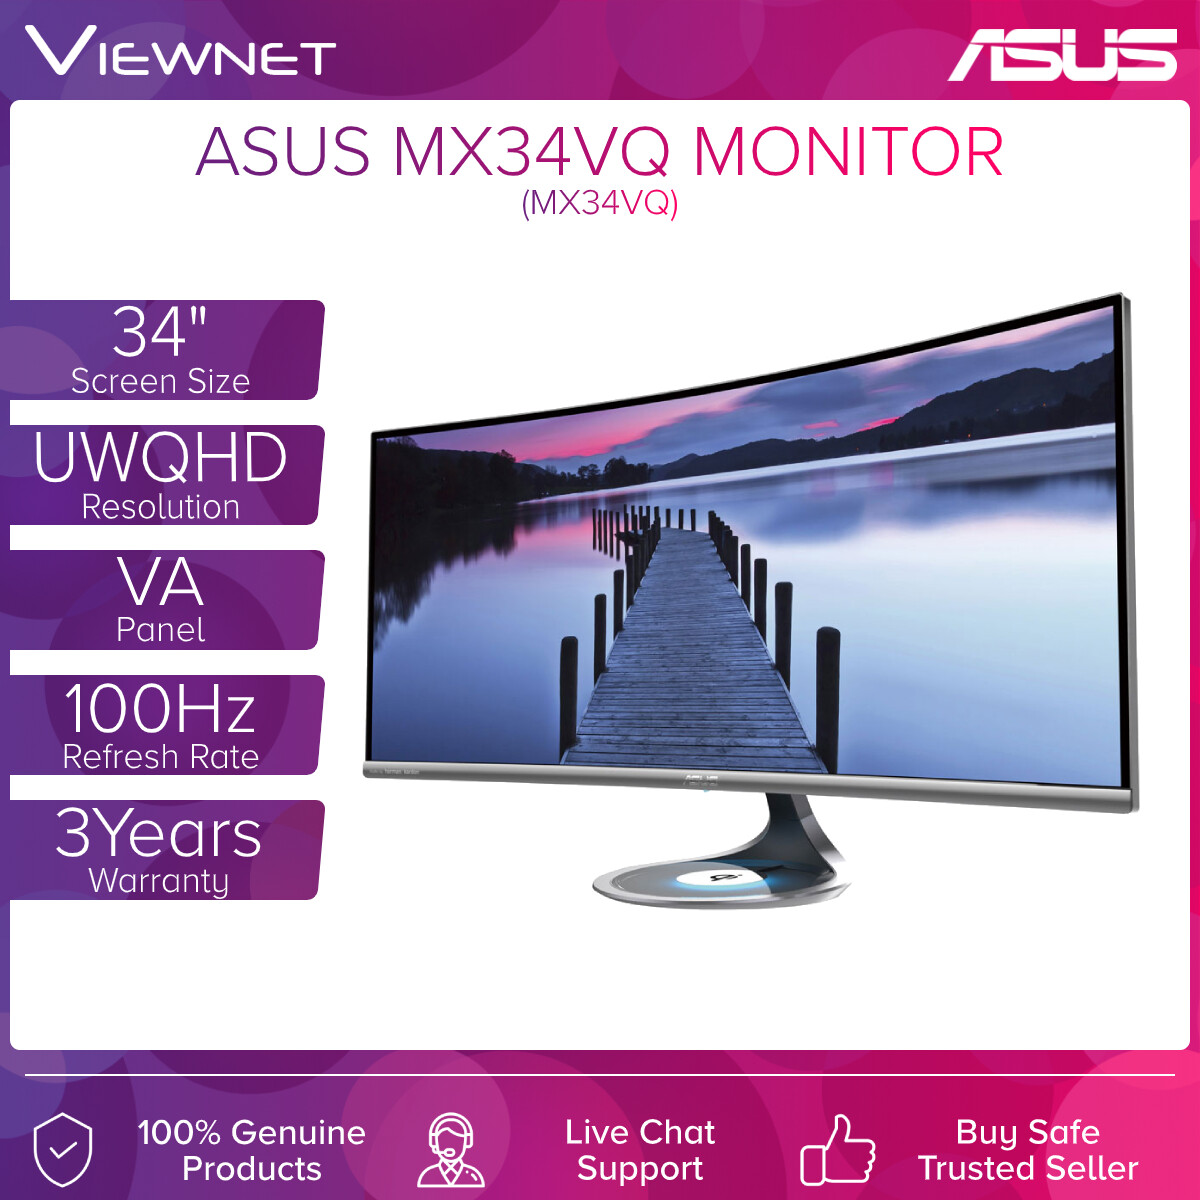 ASUS Designo Curve MX34VQ Ultra-wide Curved Monitor - 34 inch, UWQHD, 1800R Curvature, 100Hz, Frameless, Qi Wireless Charger, Audio by Harman Kardon, Flicker Free, Blue Light Filter